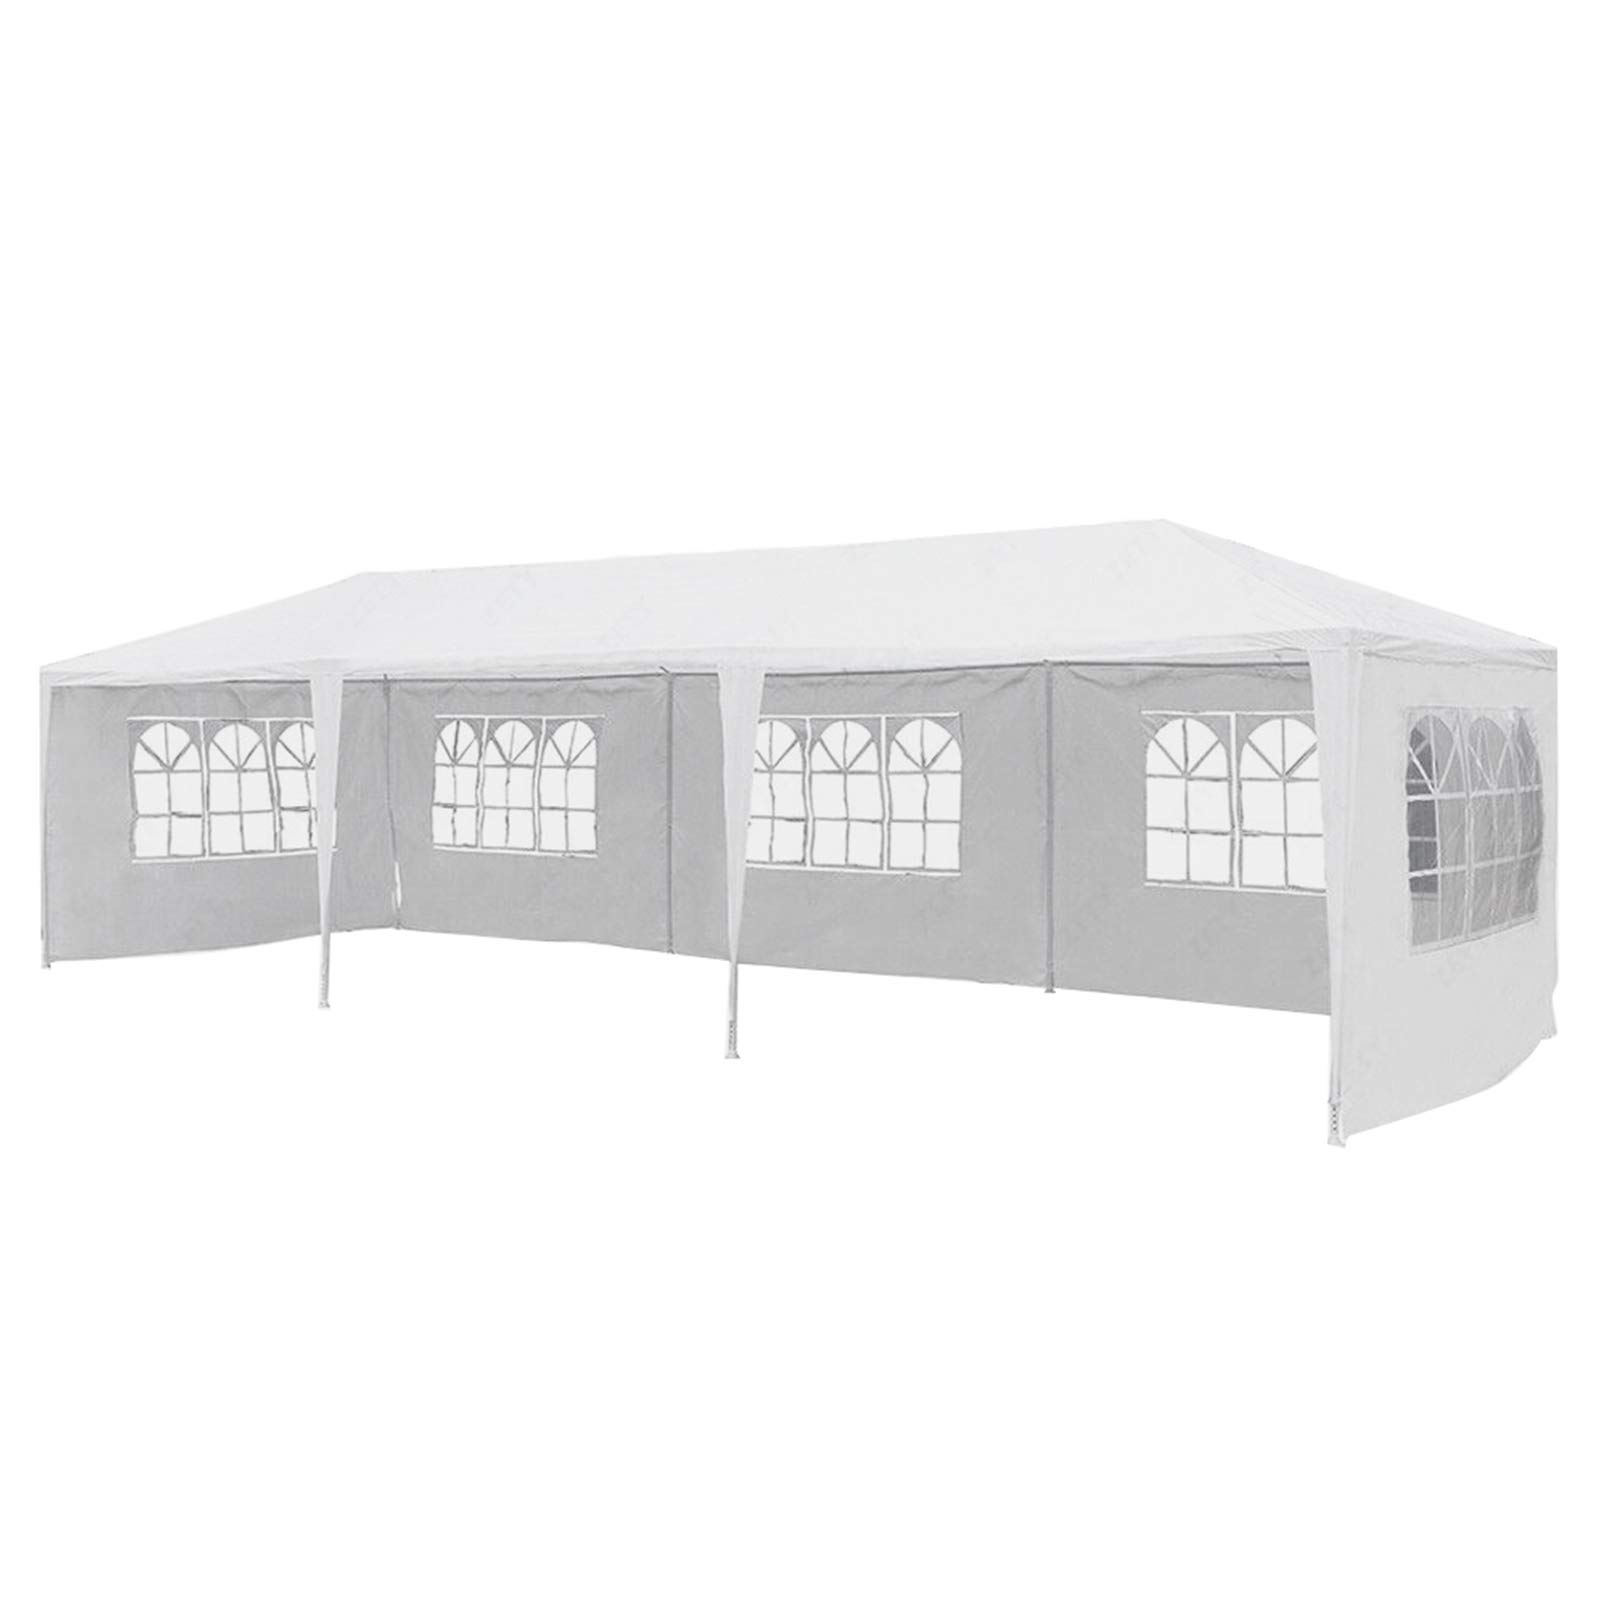 mecor 10'x30'Outdoor Canopy Party Event Wedding Tent with 5 Removable Sidewall 3 Rooms,Upgraded Stainless Steel Tube Waterproof Sun Shelter Canopy for Shows,Camping Etc